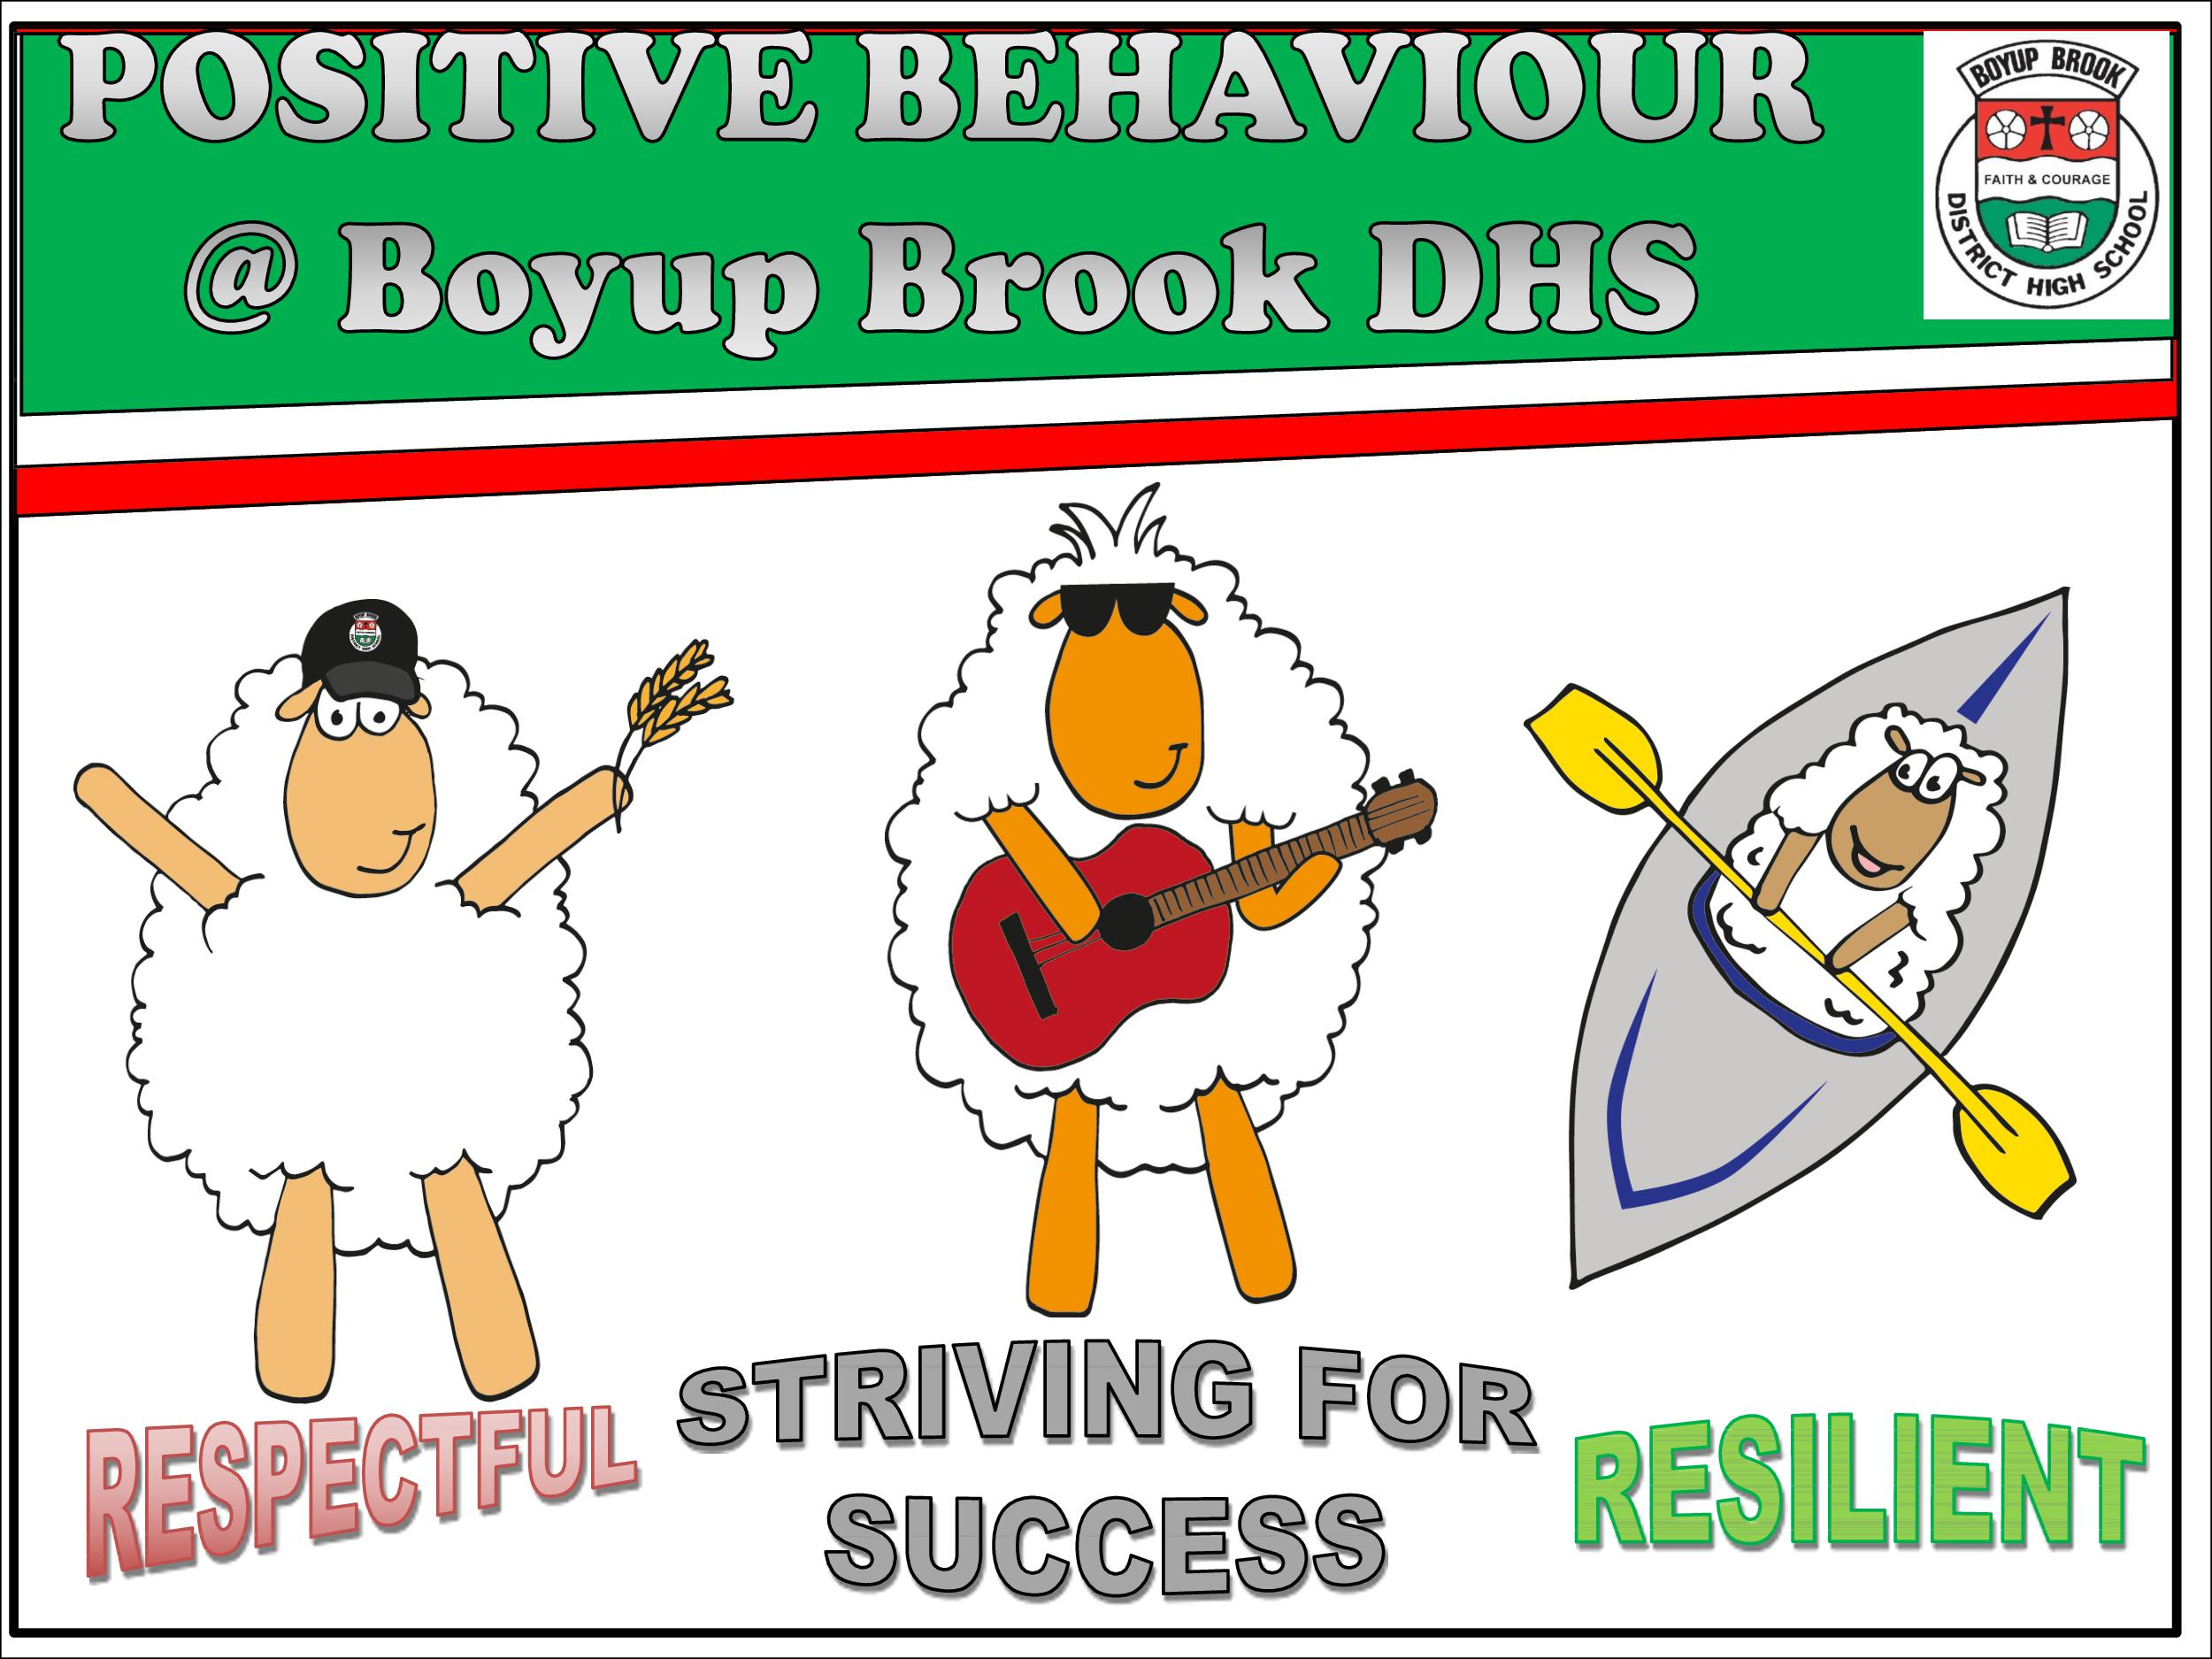 Positive Behaviour Support Page 1